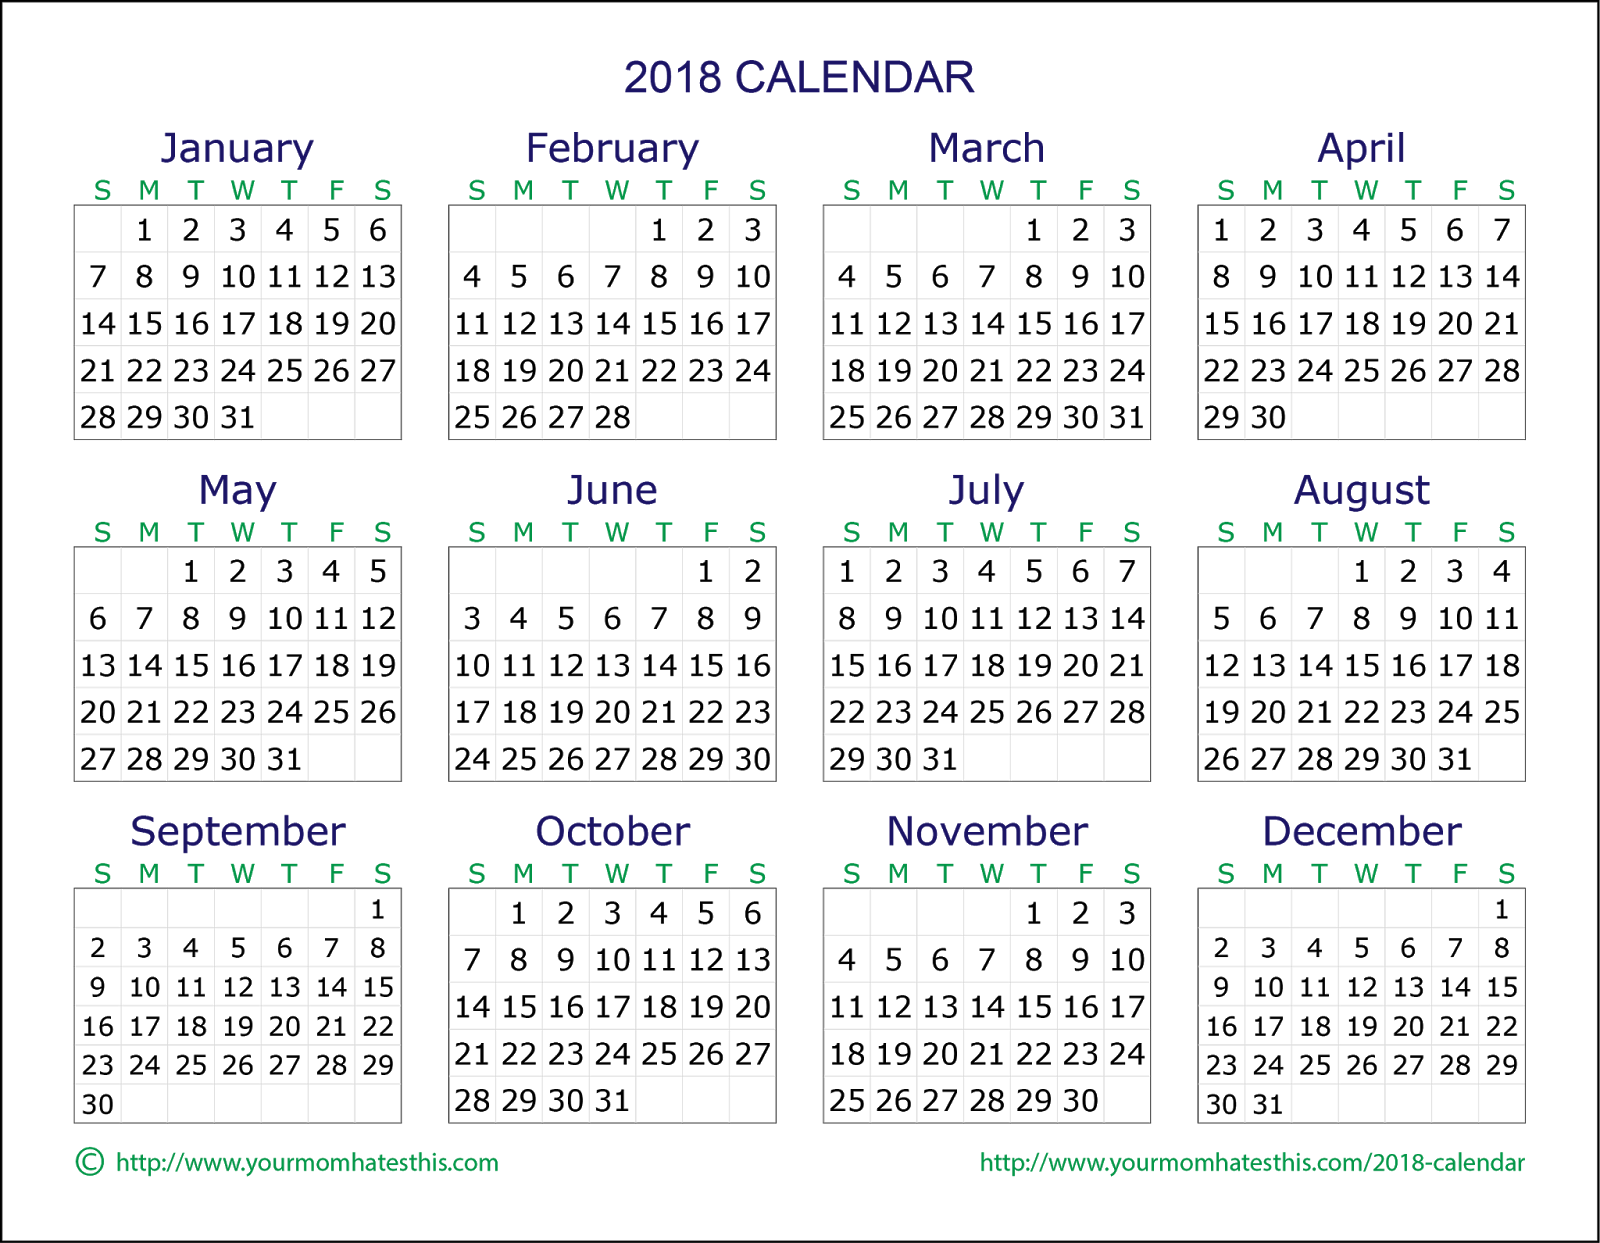 2018 calendar  u2013 download quality calendars